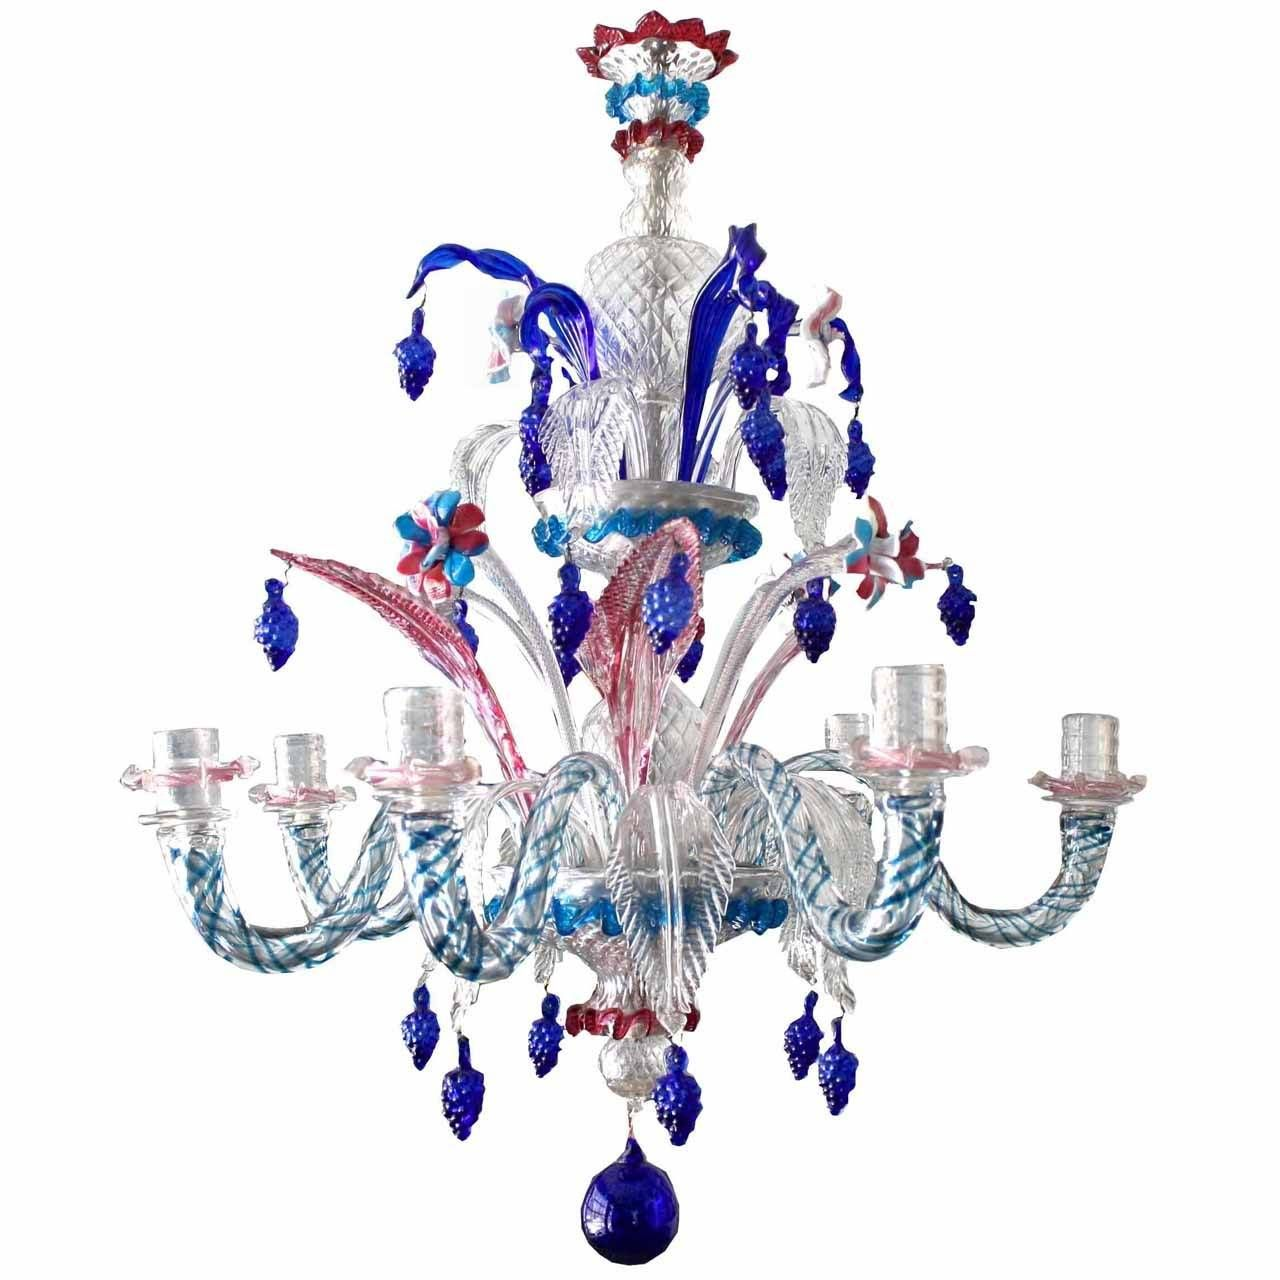 19th century murano glass harlequin chandelier murano glass 19th century murano glass harlequin chandelier 1stdibs mozeypictures Gallery